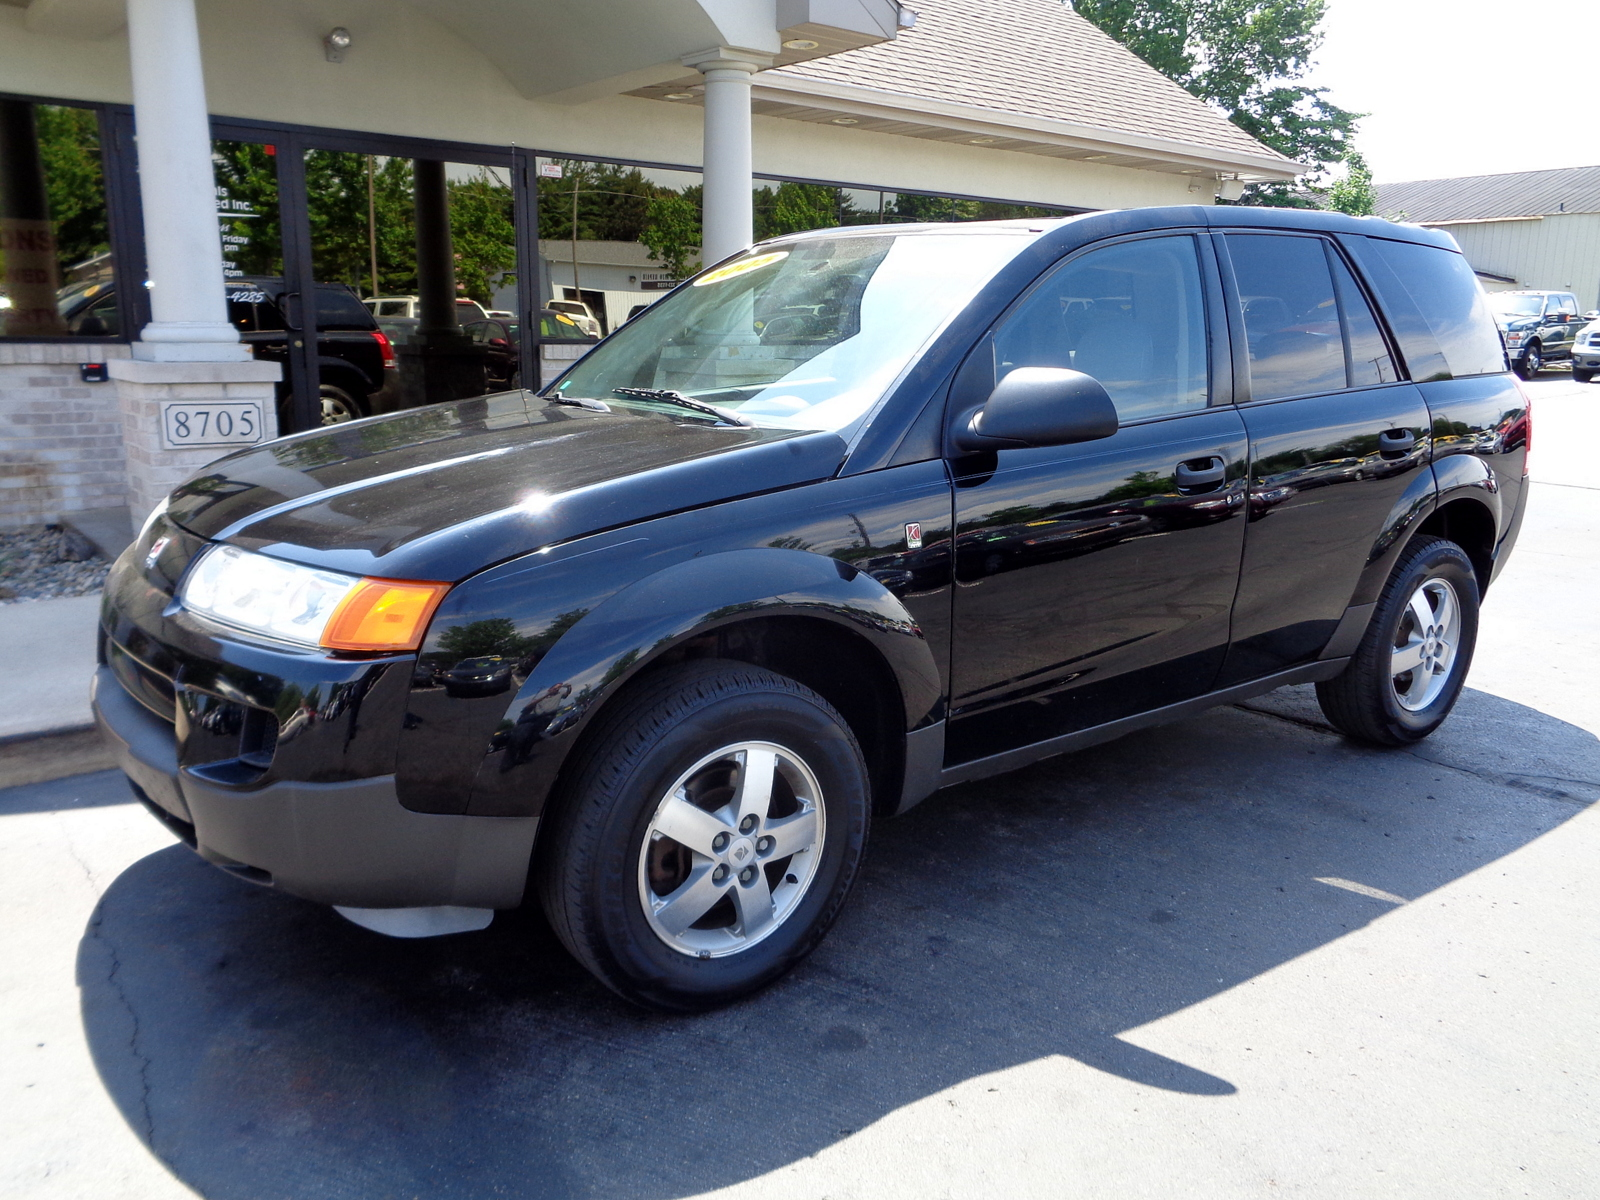 2005 saturn vue base 5 speed manual deals unlimited inc rh dealsunlimitedinc com 2005 saturn vue manual transmission fluid 2005 saturn vue manual transmission fluid